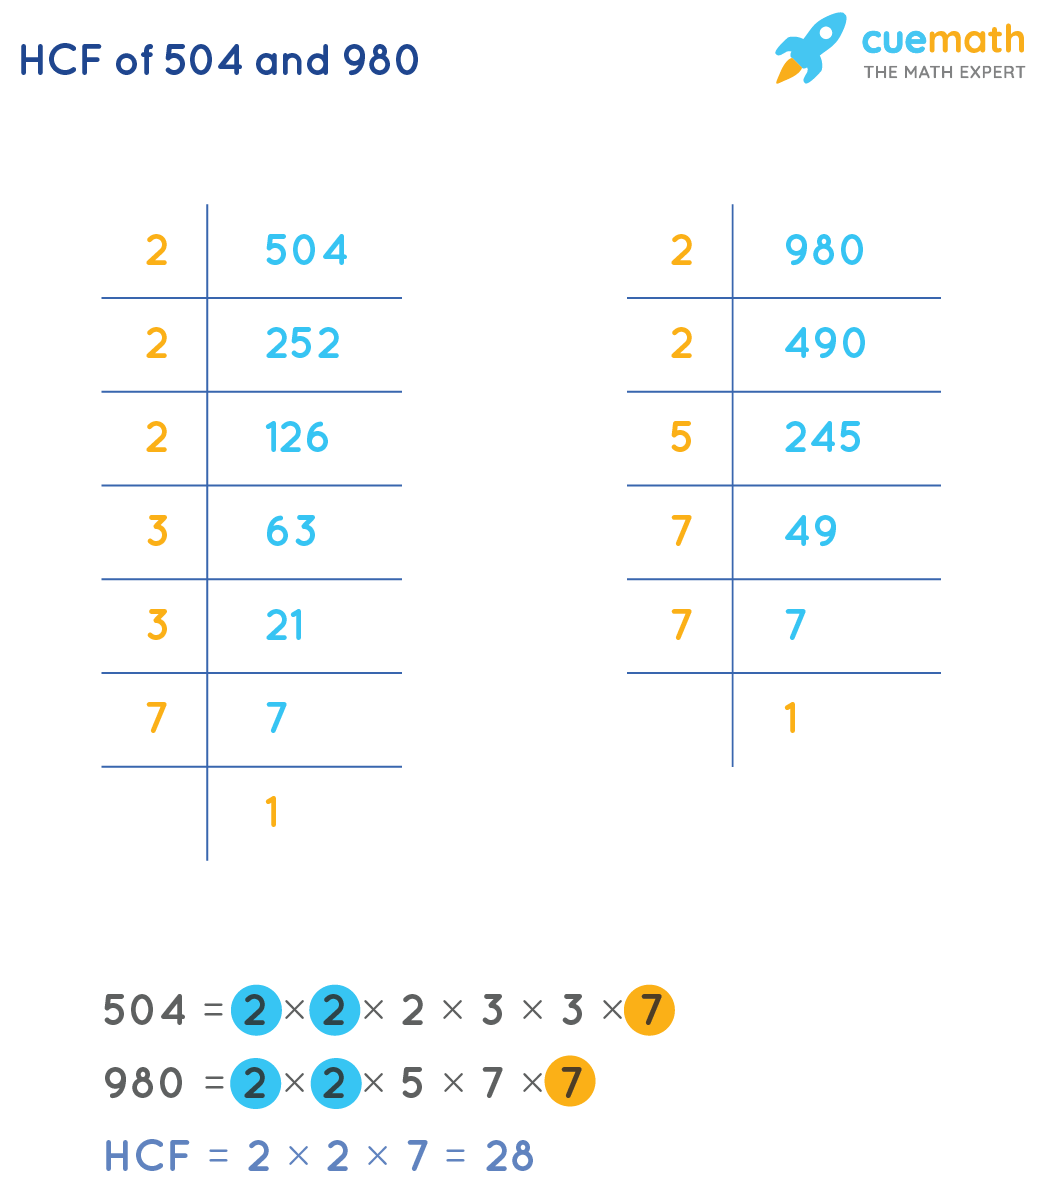 HCF of 504 and 980 by Prime Factorization